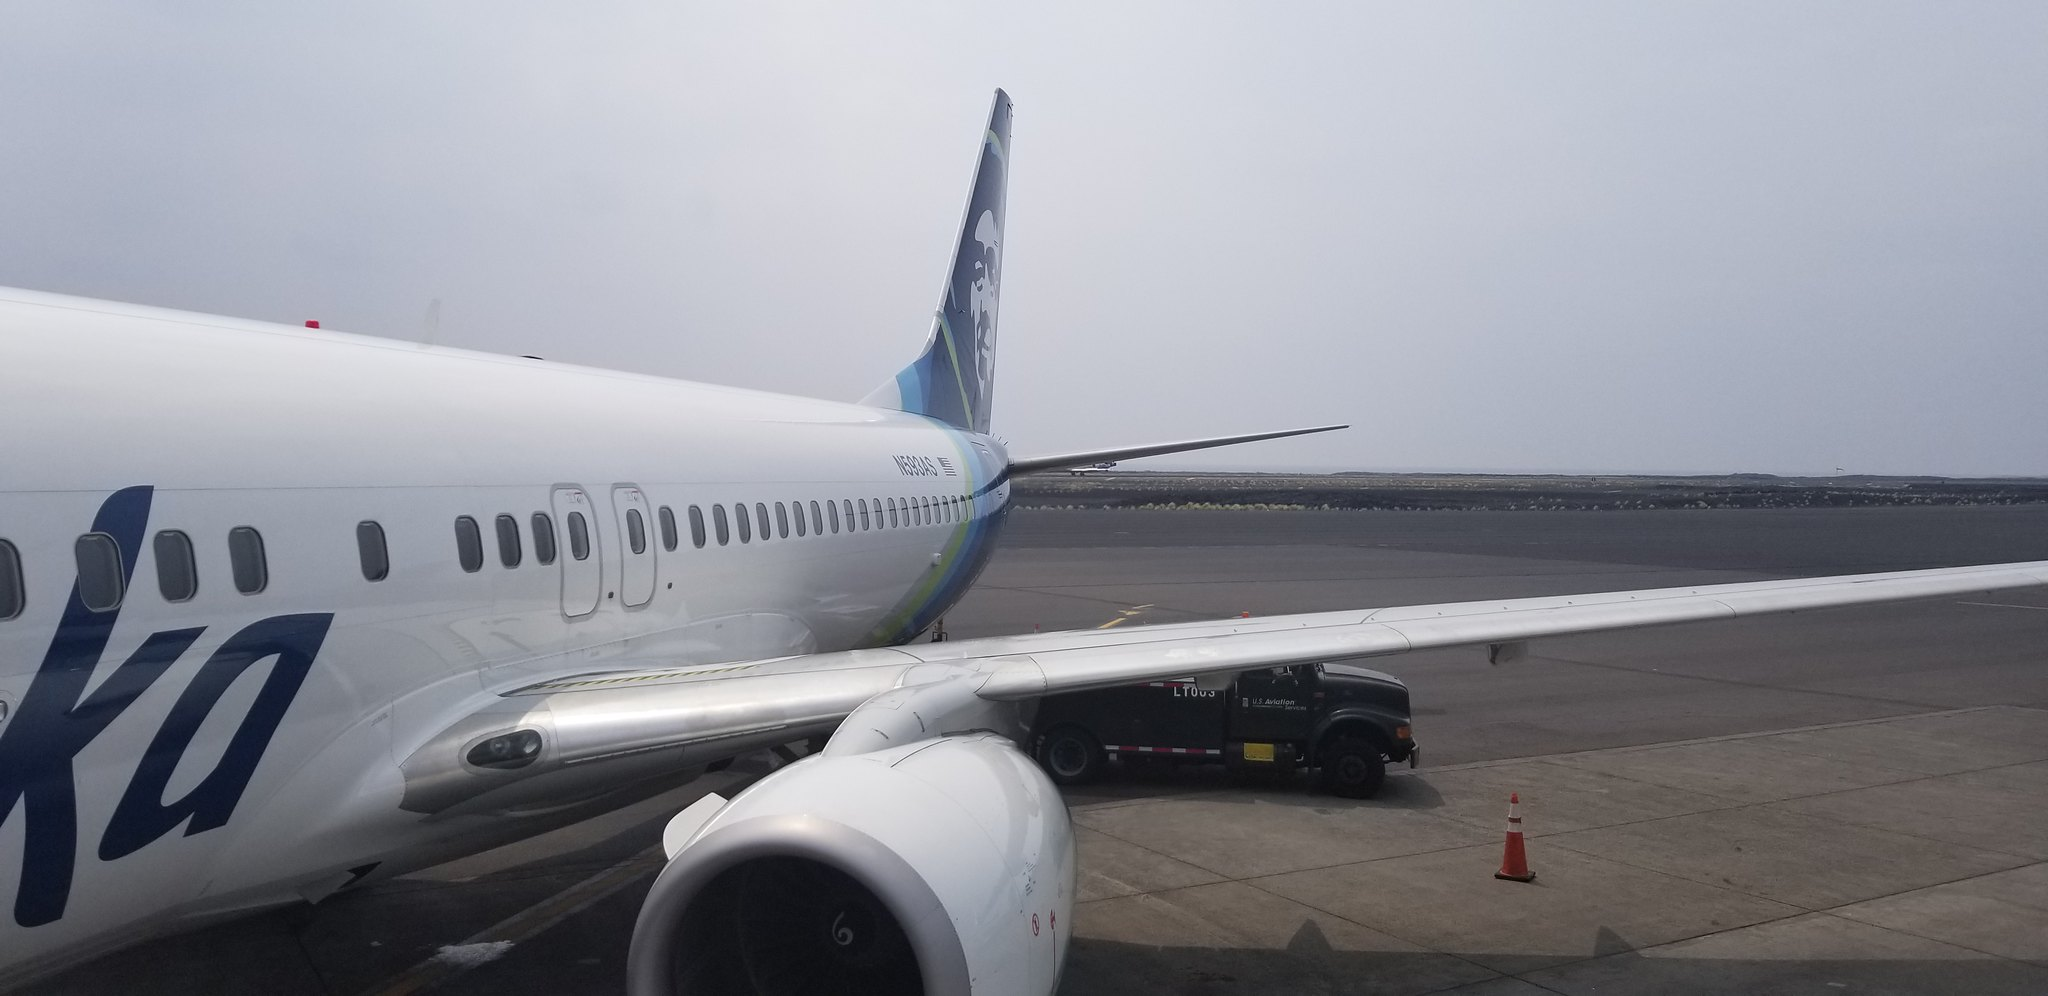 American Airlines Checked Baggage Review Of Alaska Airlines Flight From San Francisco To